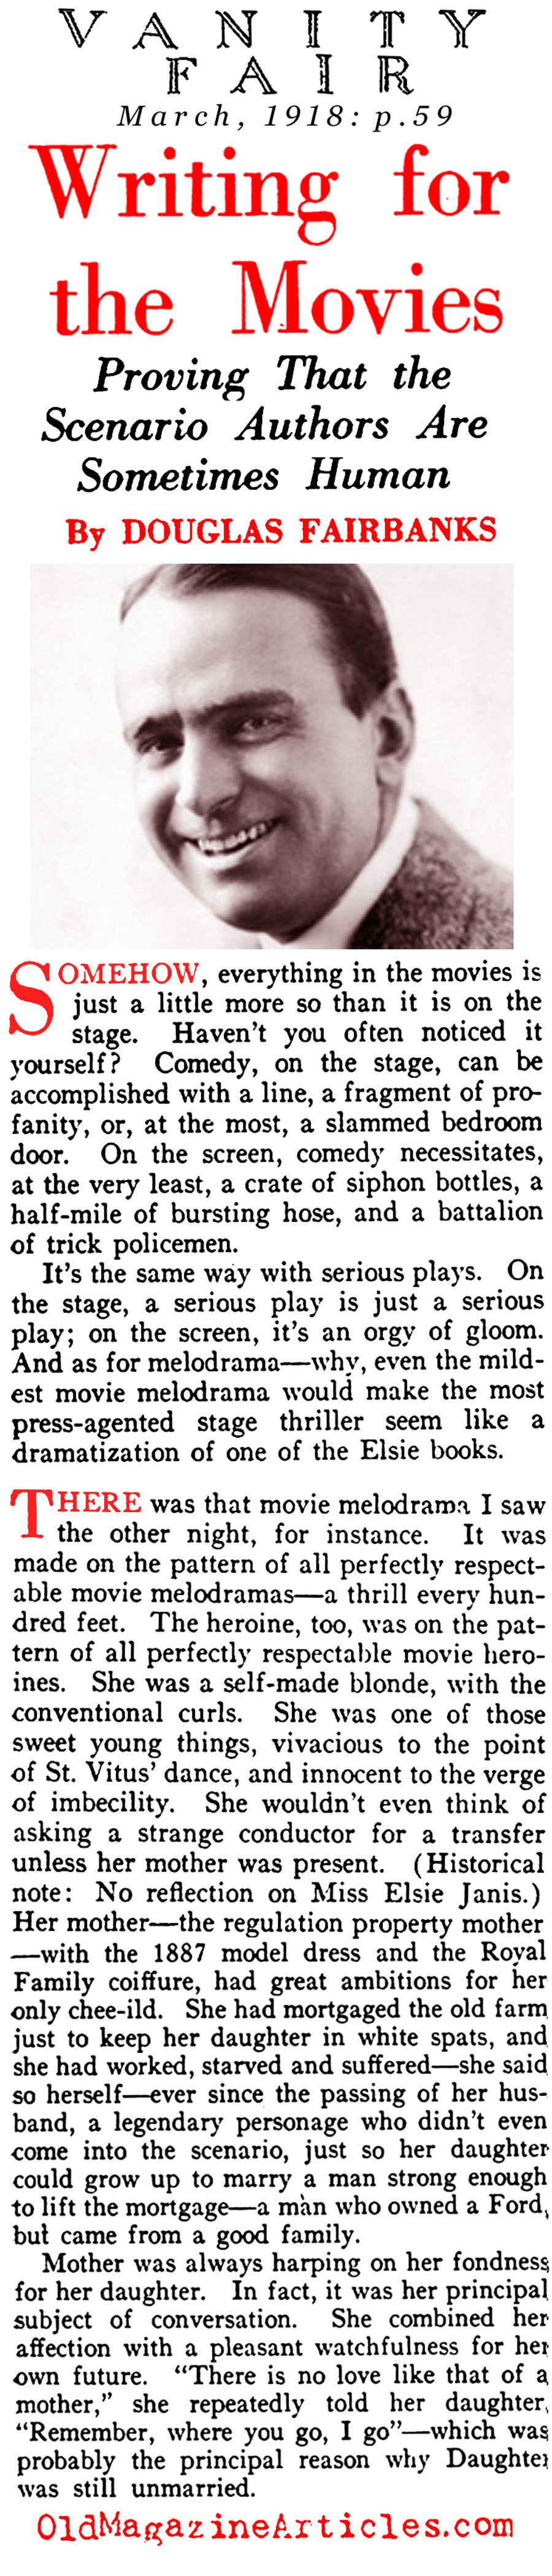 Douglas Fairbanks on the Writers of Silent Movies... (Vanity Fair, 1918)